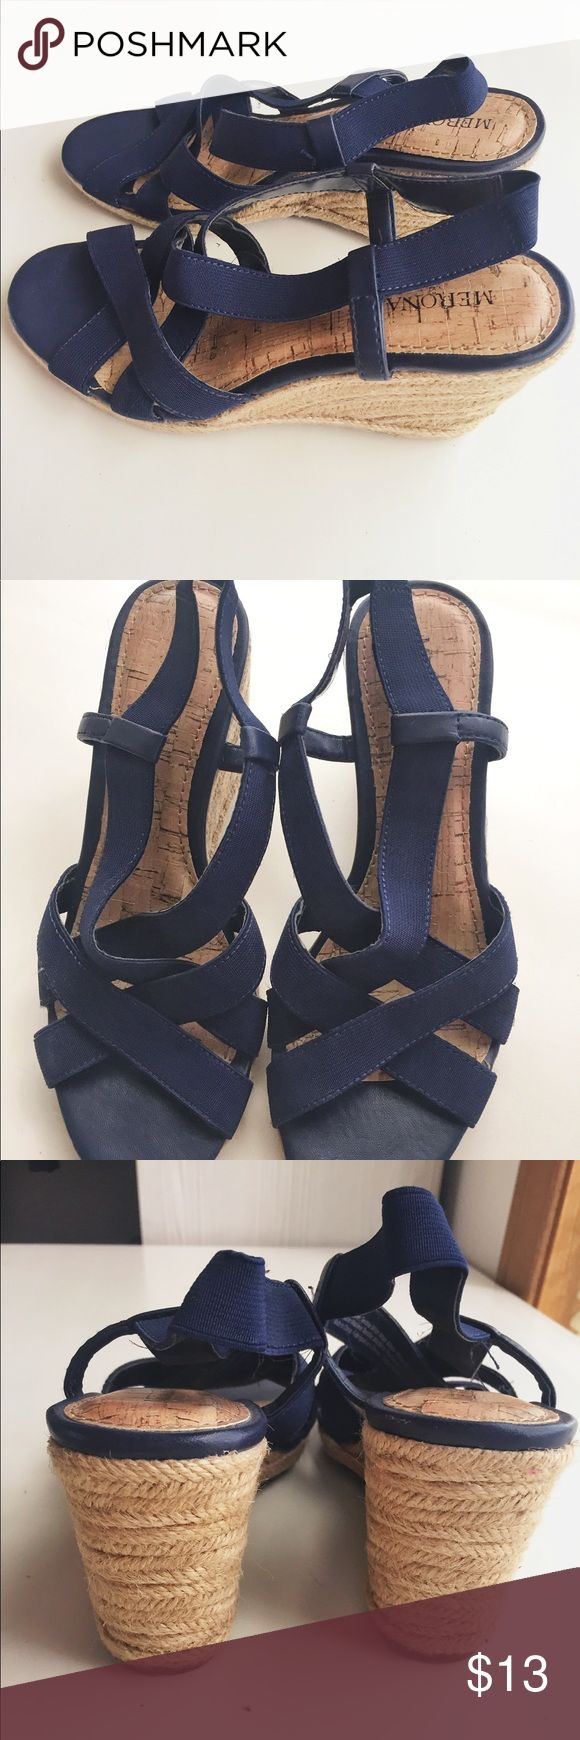 Navy wedges Cute summer wedges from Target. Only worn once or twice. Merona Shoes Wedges